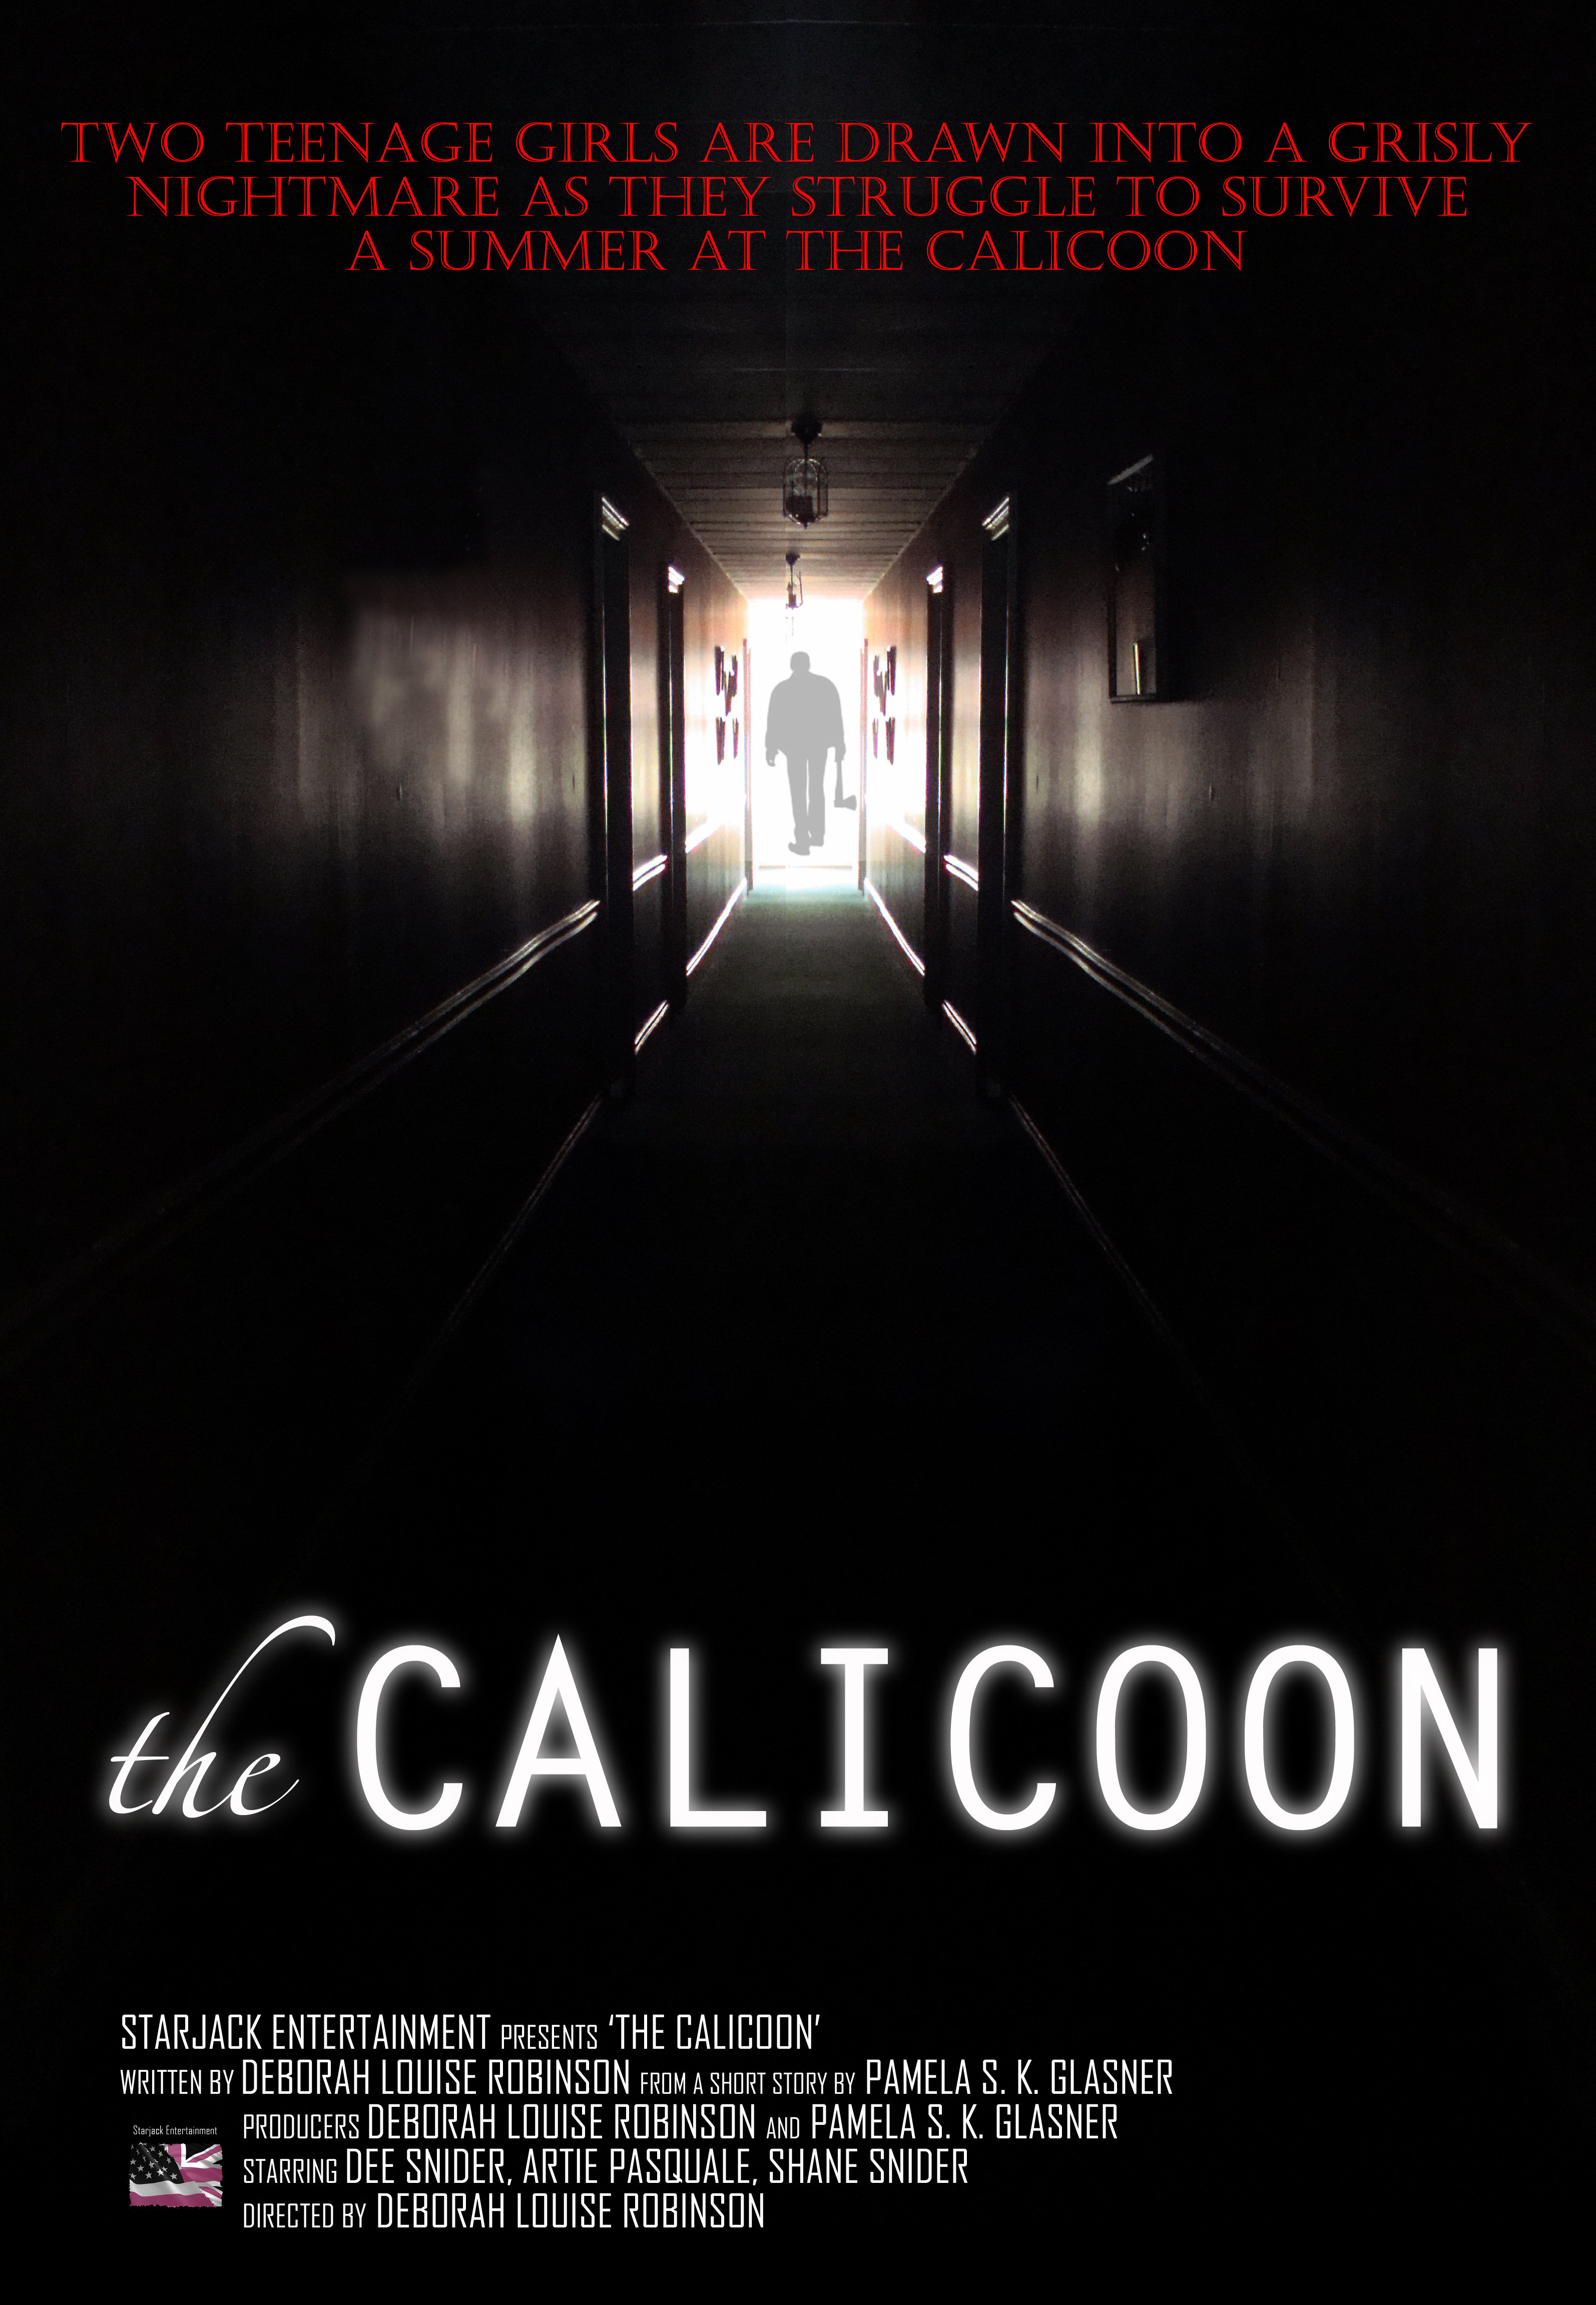 Calicoon